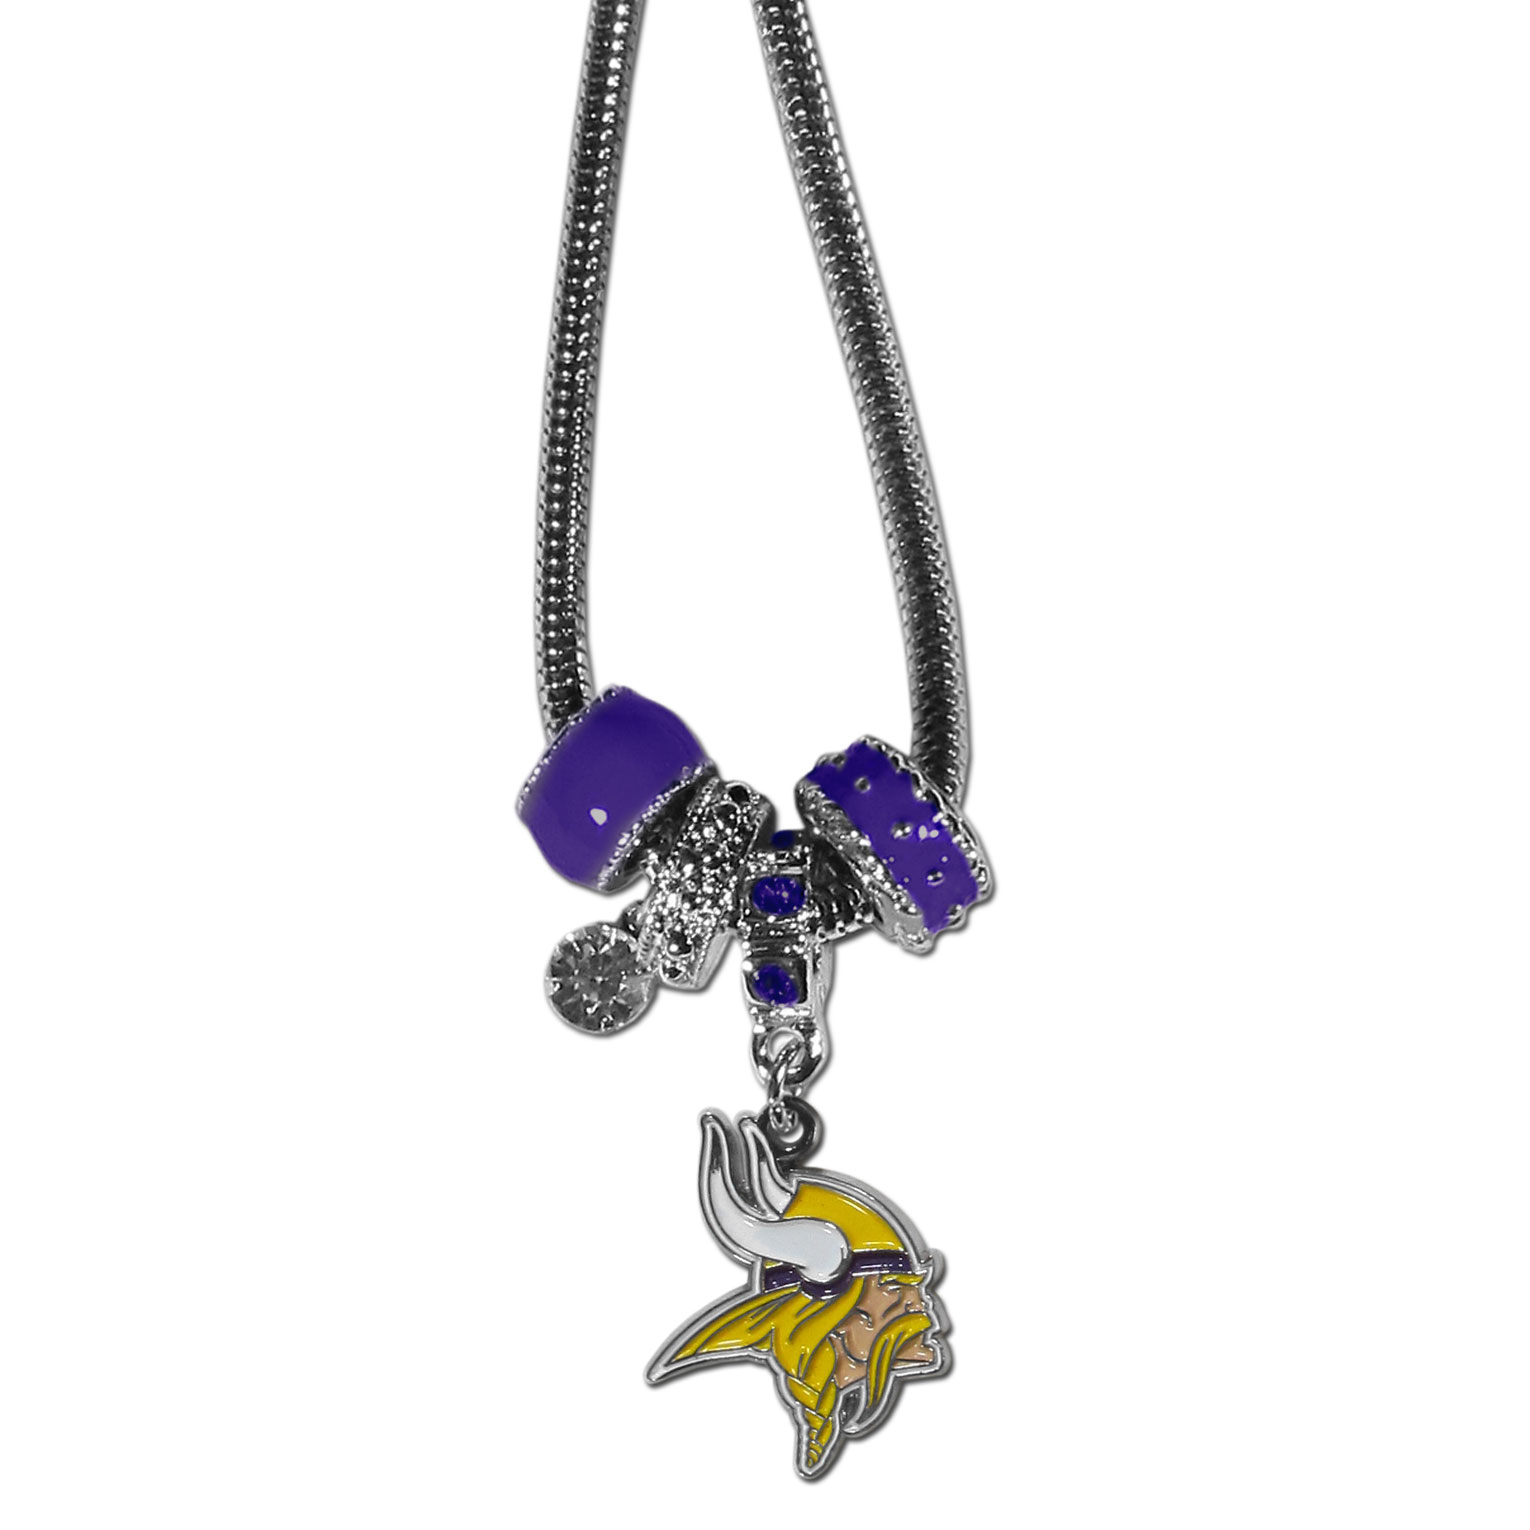 Minnesota Vikings Euro Bead Necklace - We have combined the wildly popular Euro style beads with your favorite team to create our Minnesota Vikings bead necklace. The 18 inch snake chain features 4 Euro beads with enameled team colors and rhinestone accents with a high polish, nickel free charm and rhinestone charm. Perfect way to show off your team pride.